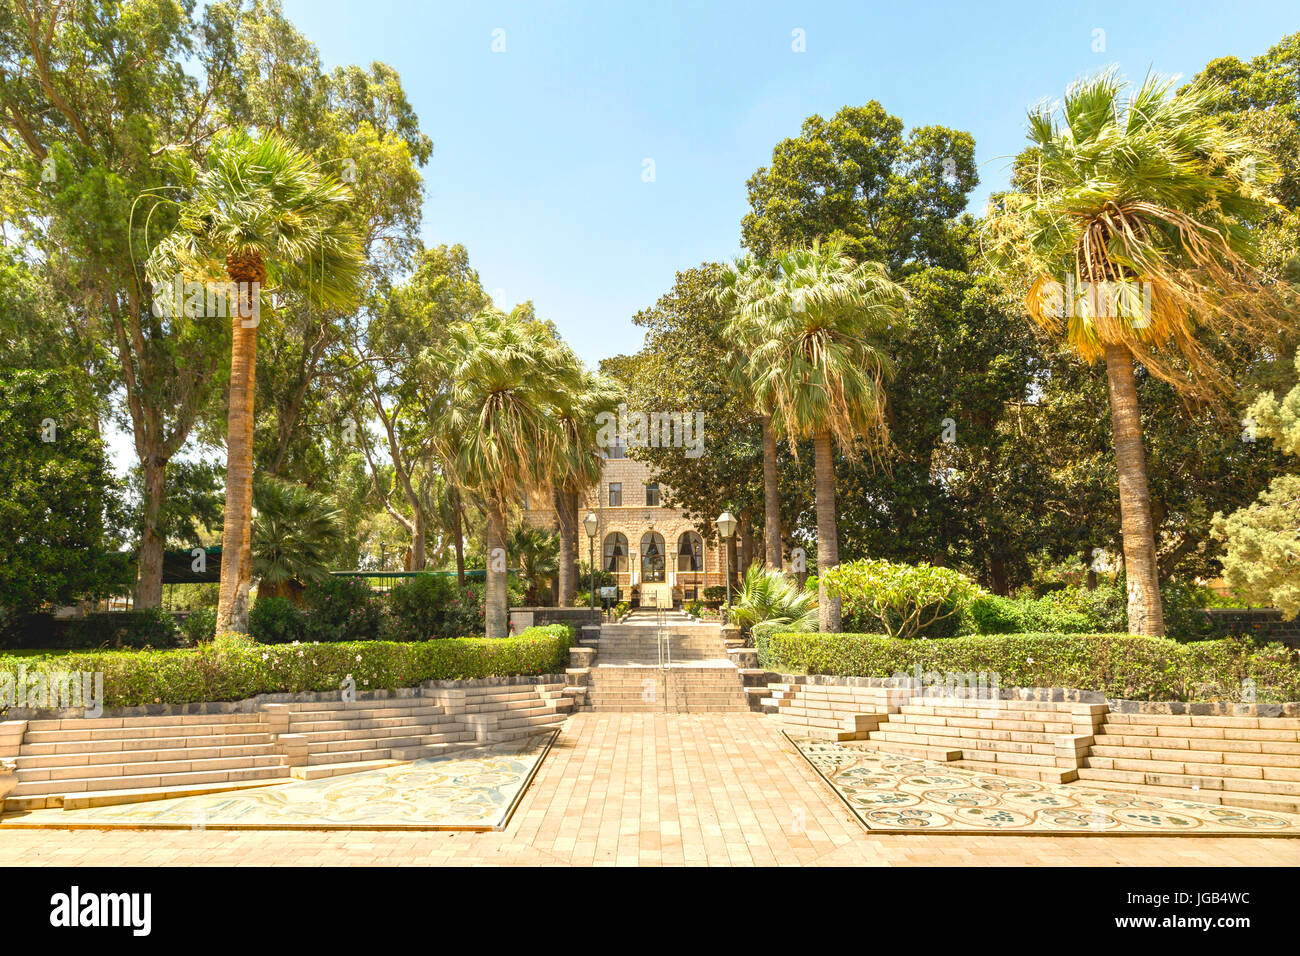 Israel, Mount of Beatitudes, Kinnerot: Cloister Gardens of Beatitudes church at the Sea of Galilee. Stock Photo